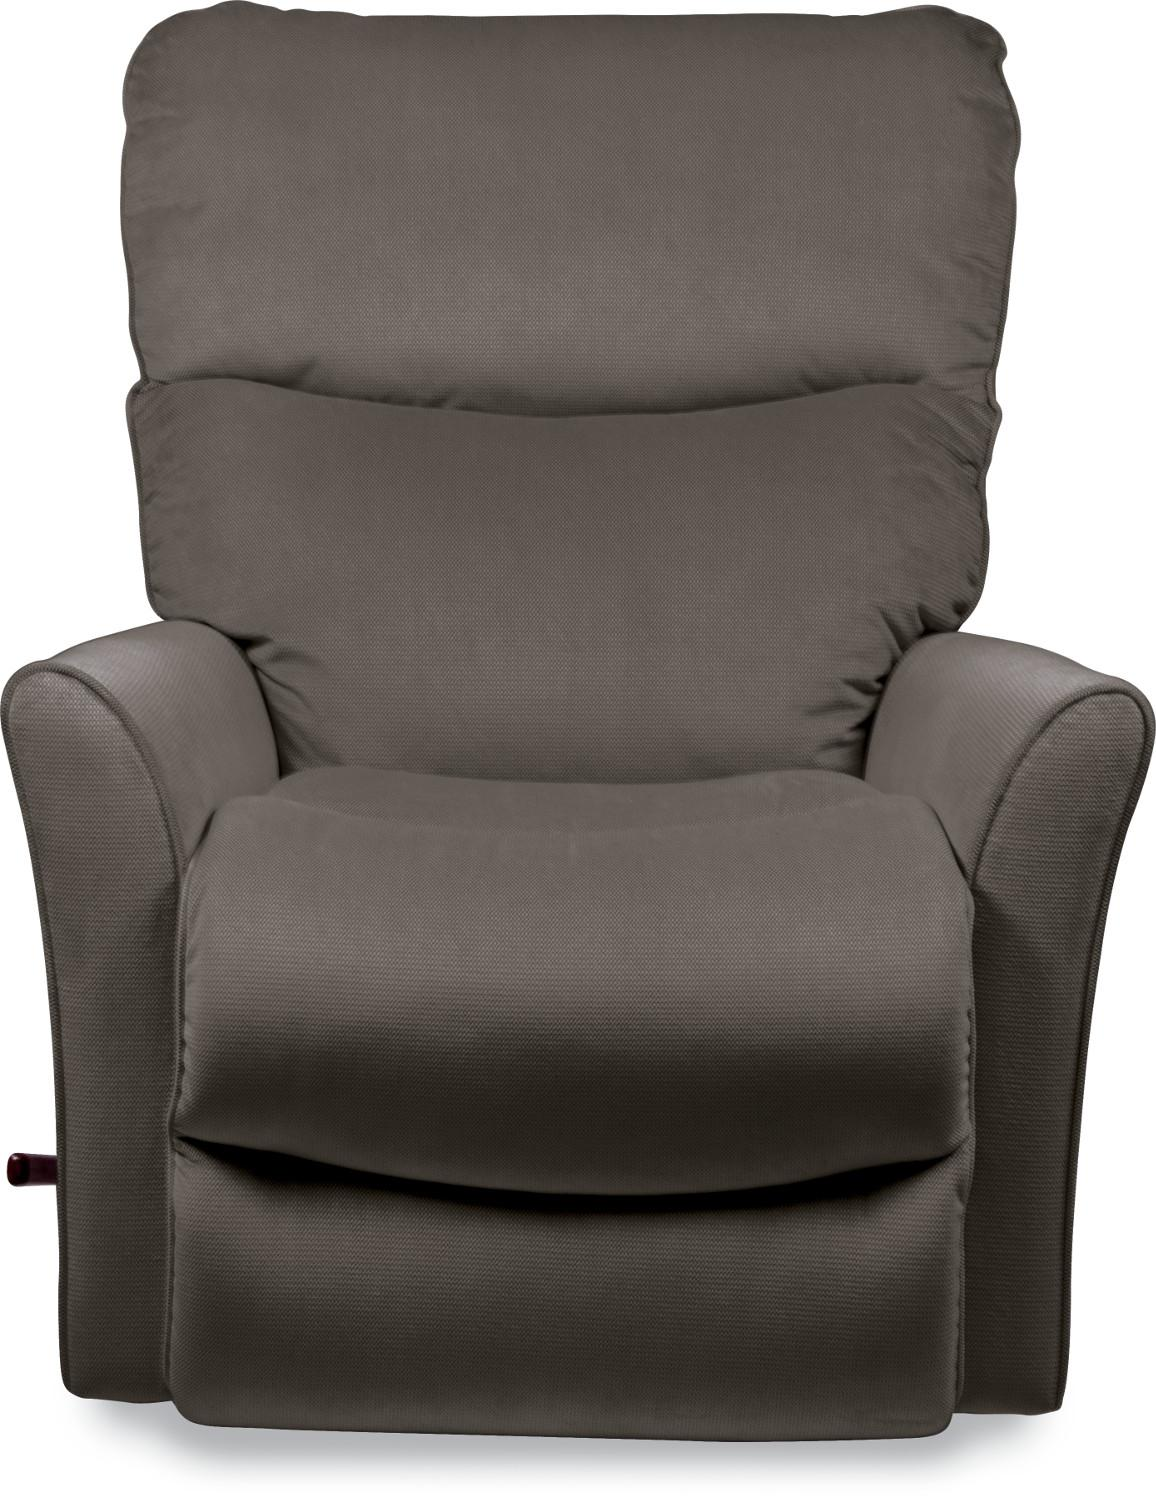 Lazy Boy Sleeper Chair Rowan Rowan Small Scale Reclina Rocker Recliner With Flared Arms By La Z Boy At Boulevard Home Furnishings